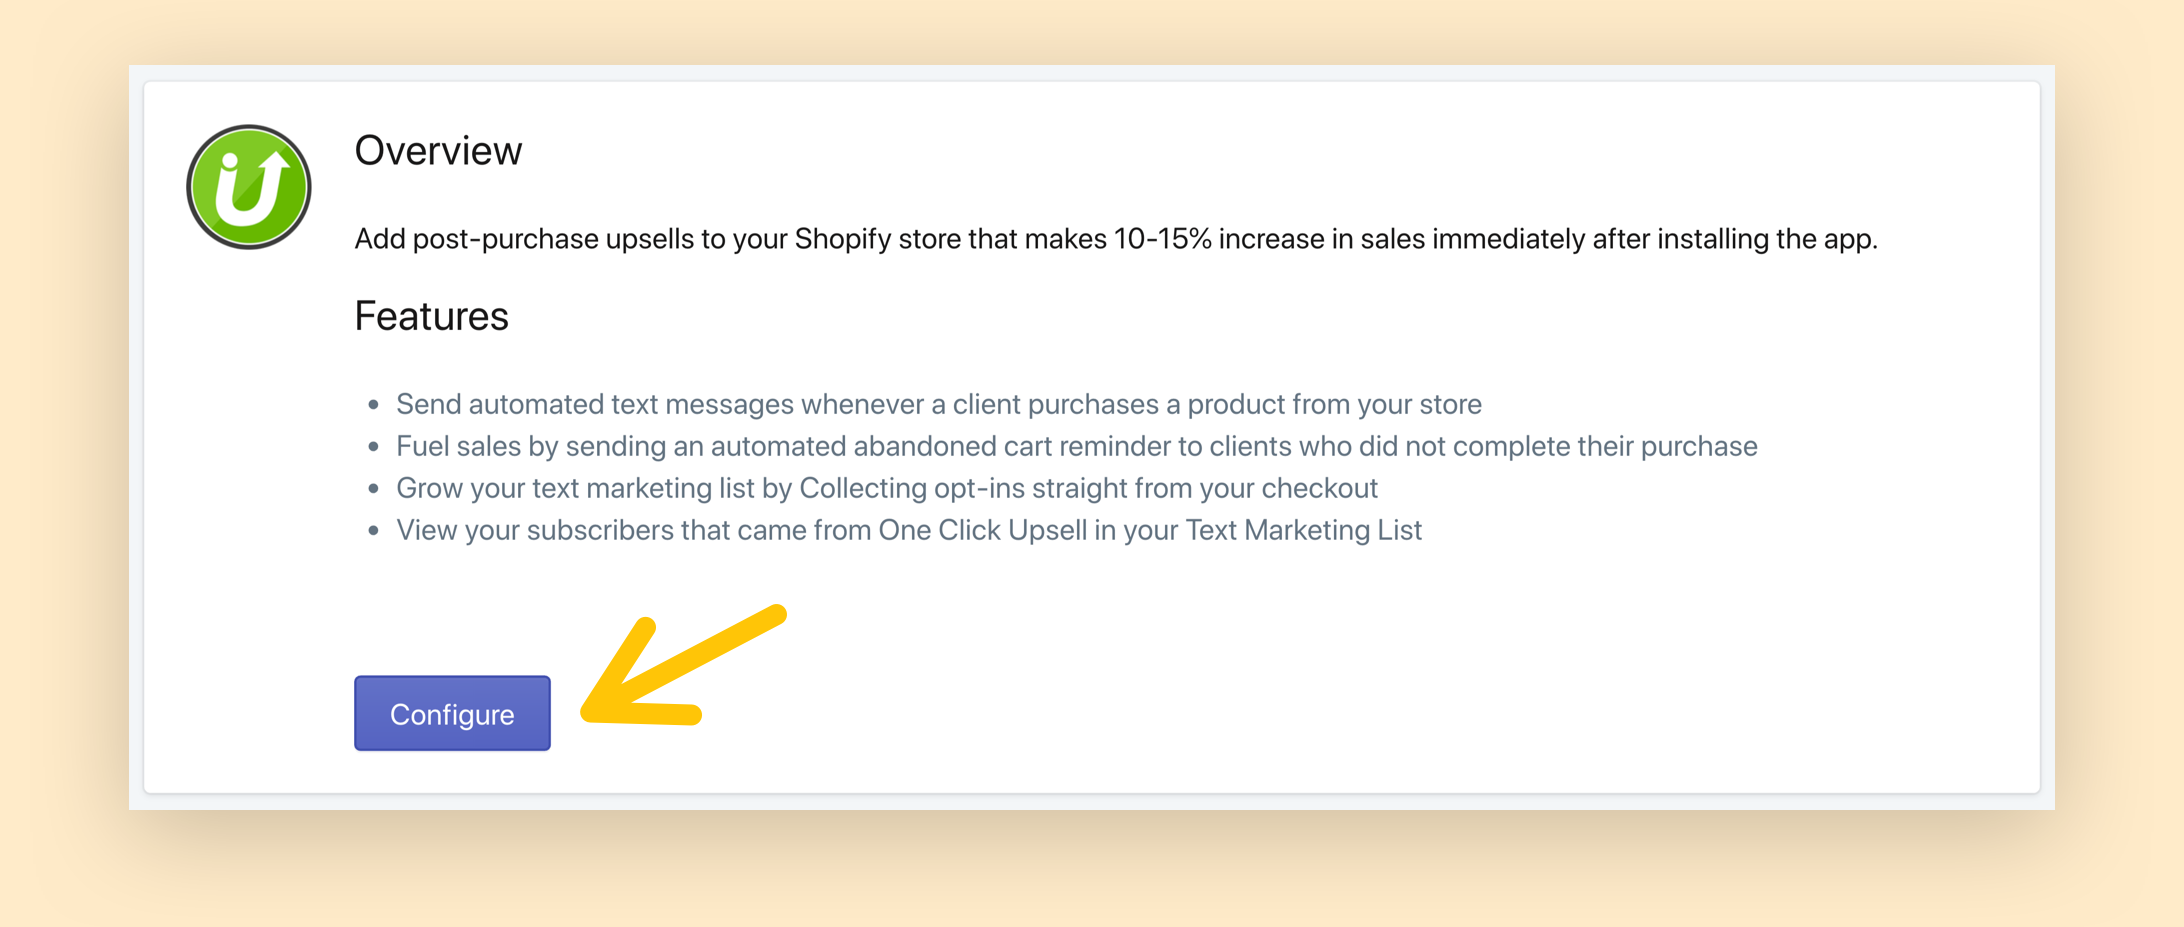 OCU and SMSBump Integration for Shopify: Automate Abandoned Cart SMS Recovery